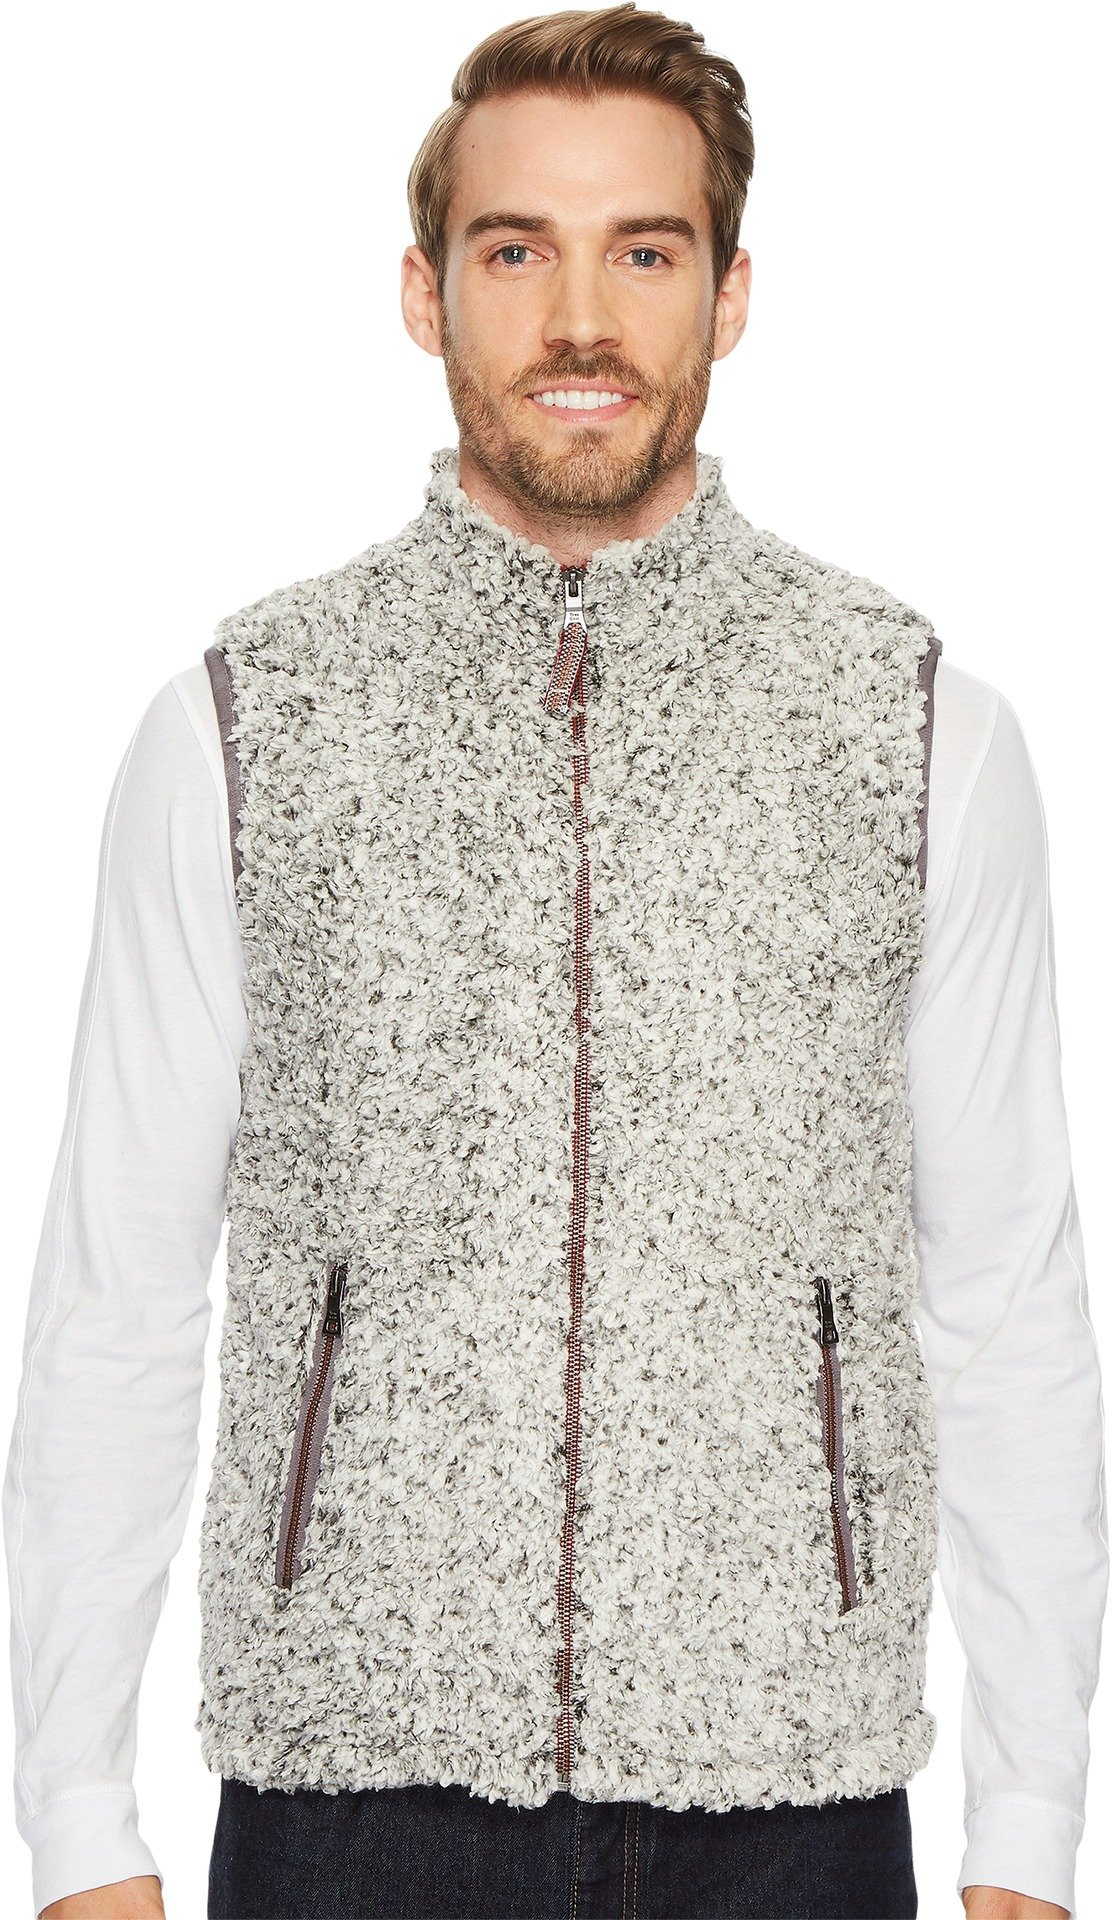 True Grit Men's Frosty Tipped Double Vest with Zip Pockets, Charcoal, M